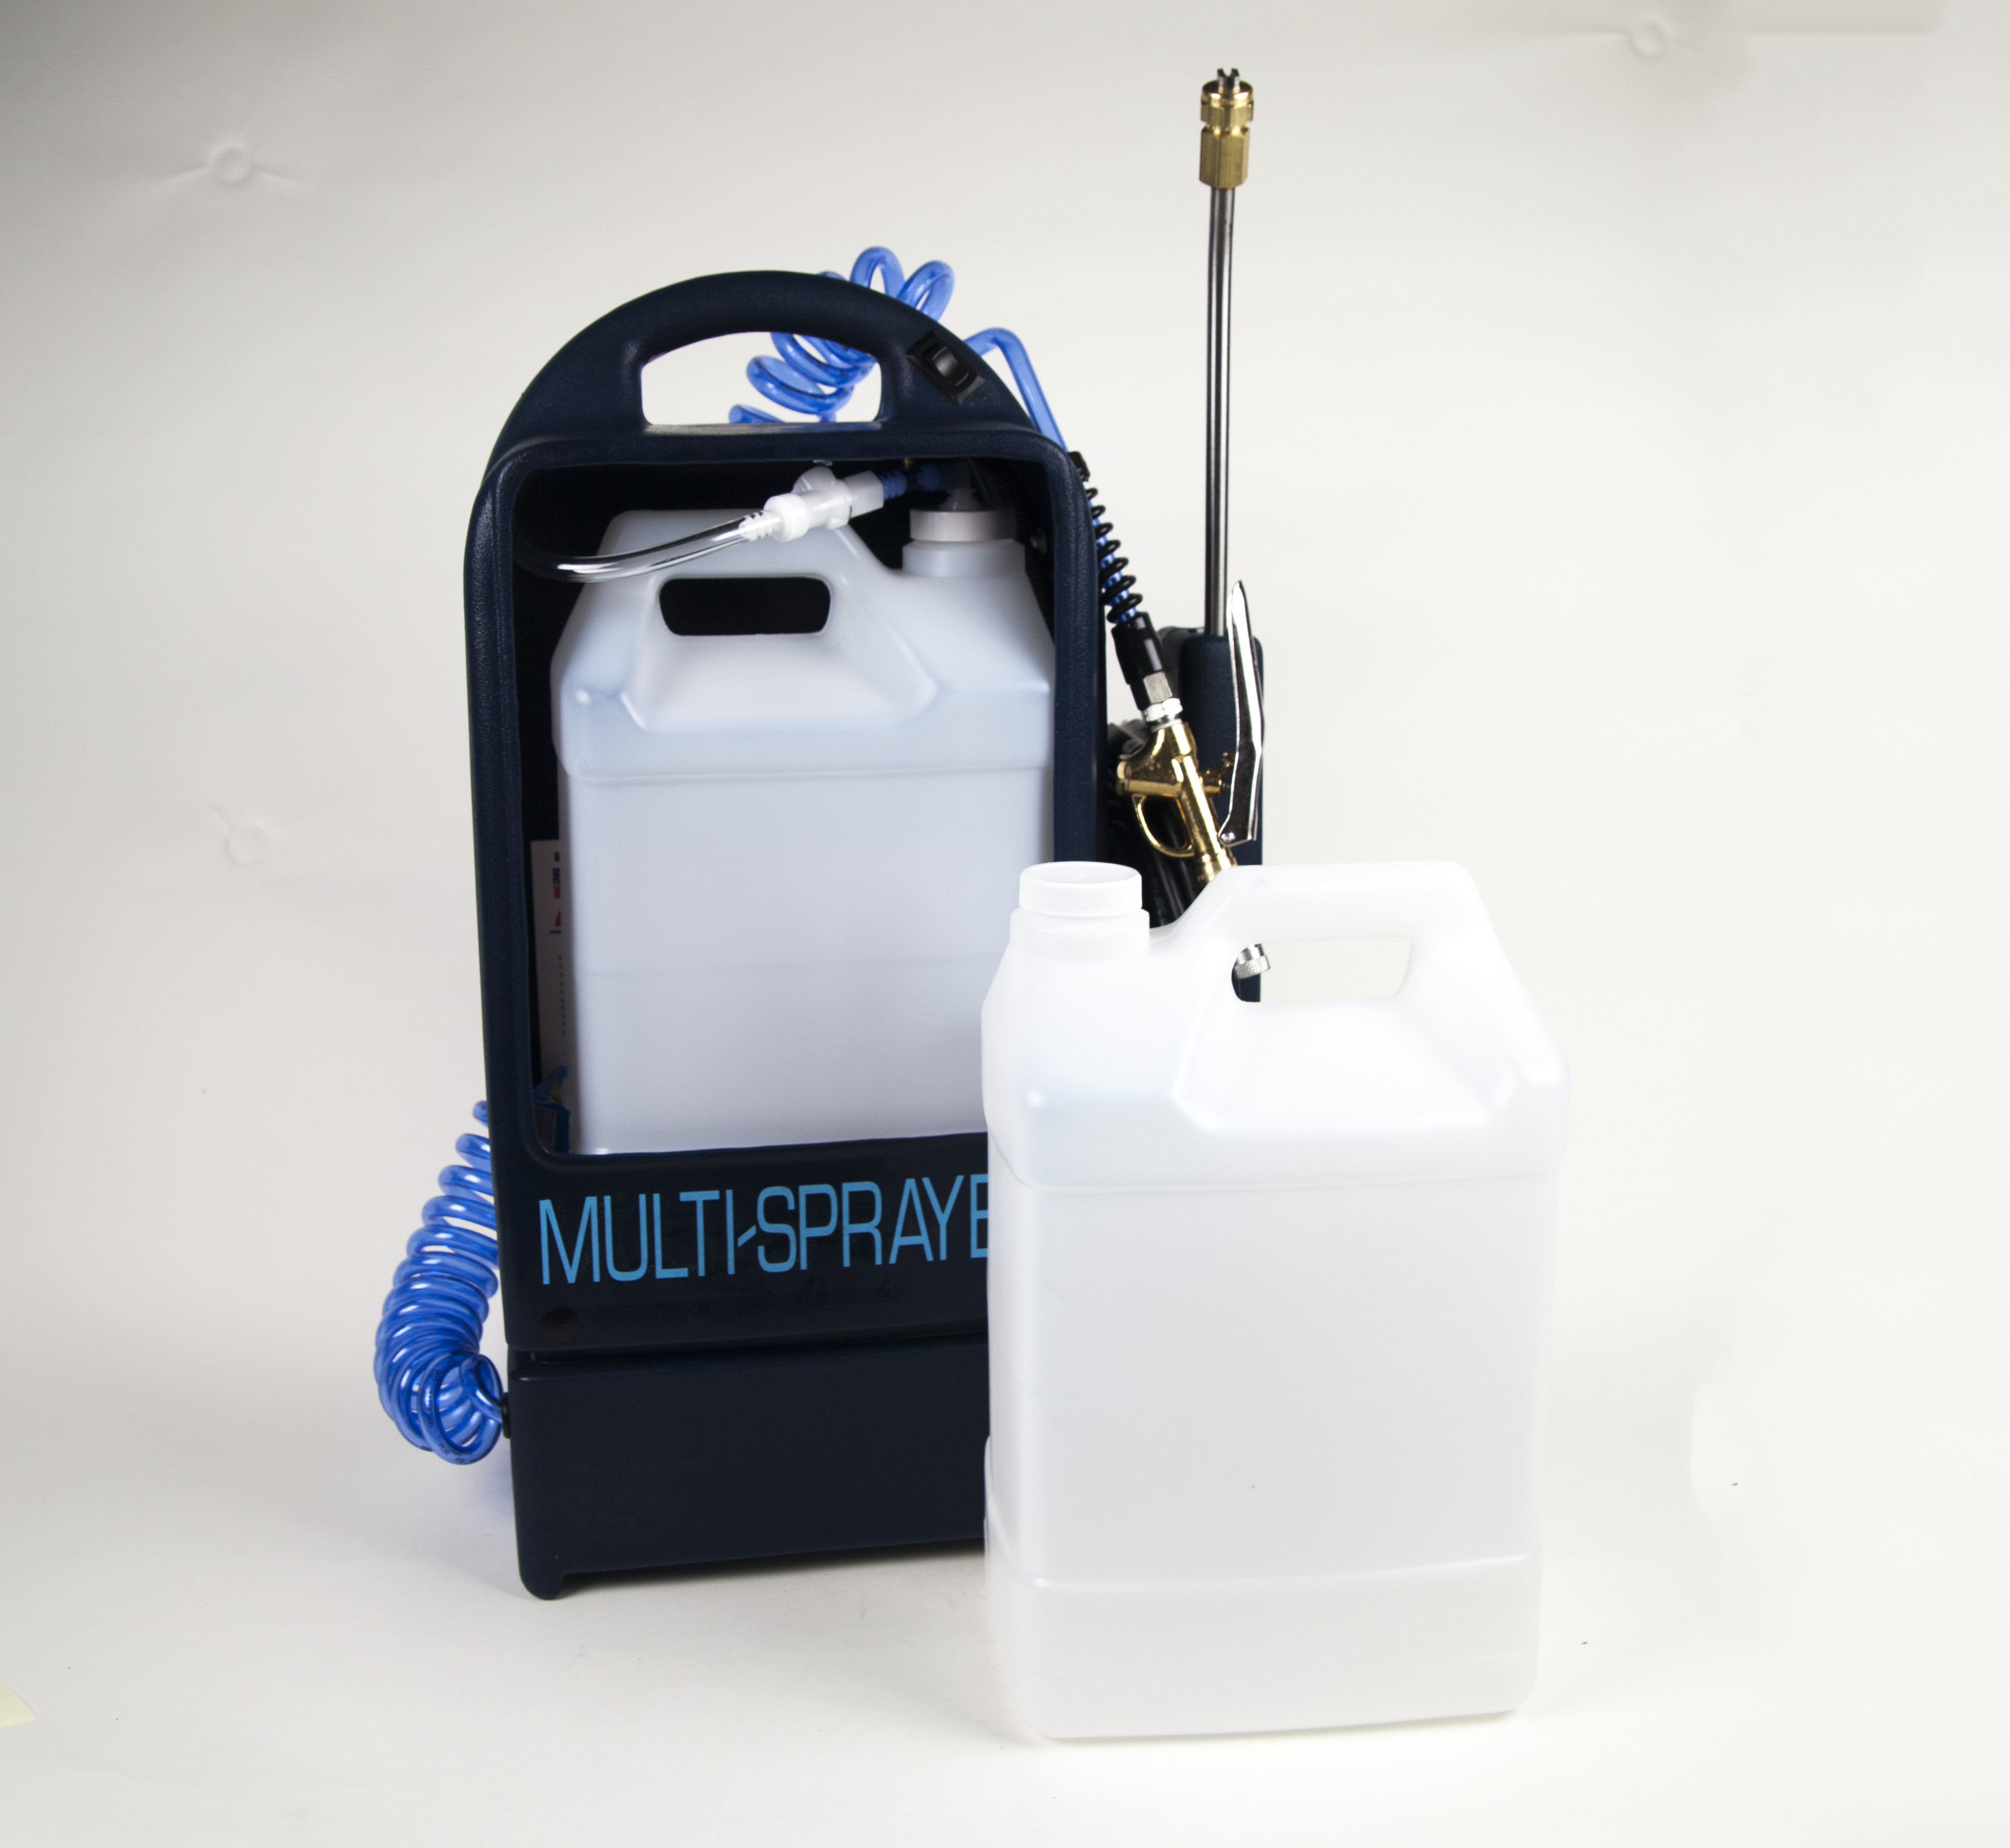 Multi-Sprayer® Deluxe Electric Sprayer for applying traffic lane spotters, carpet protectors and deodorizers